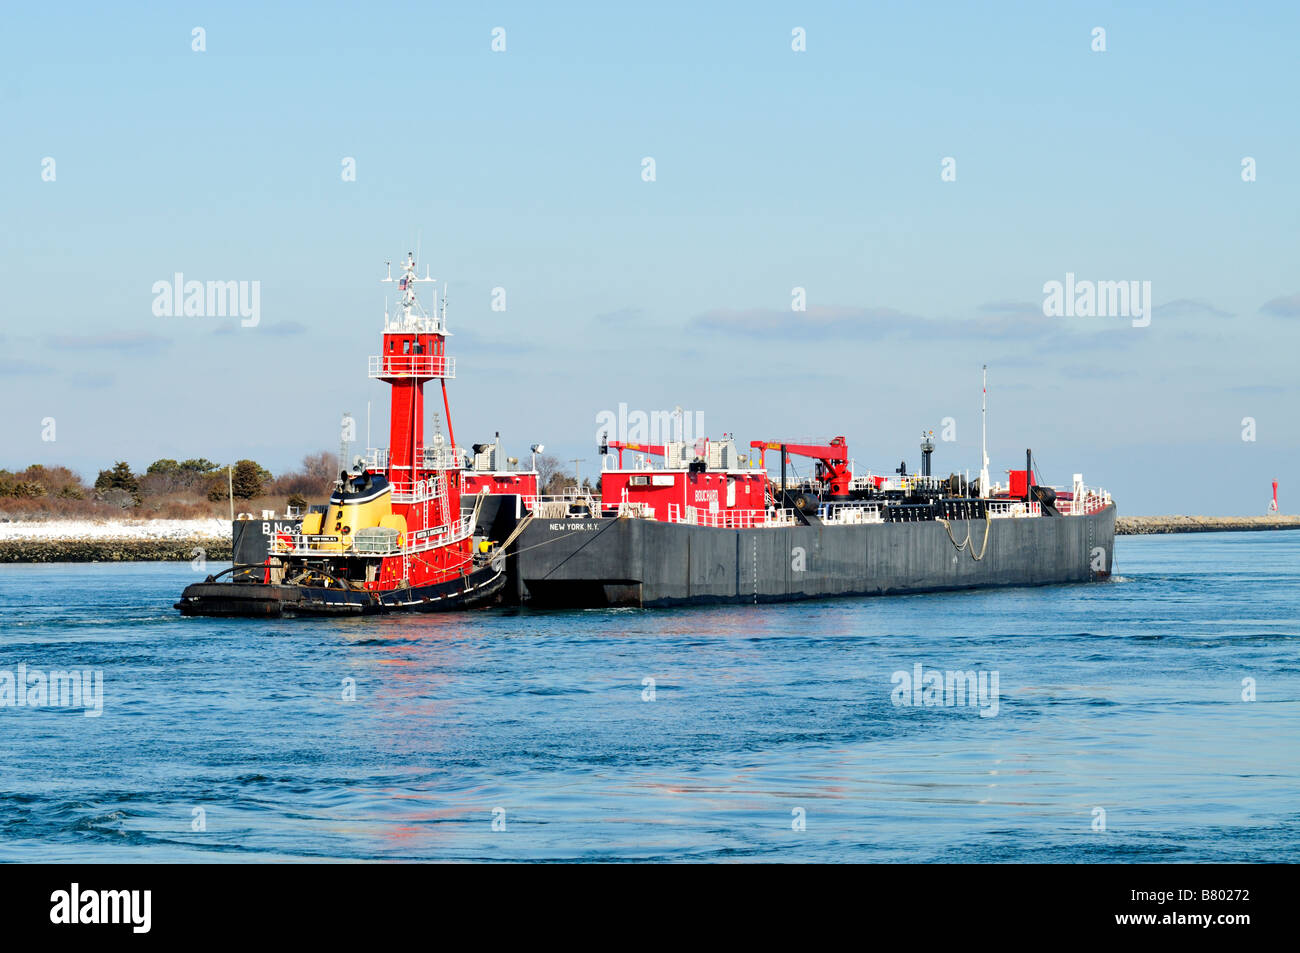 Red tugboat and barge heading out to sea on clear winter day